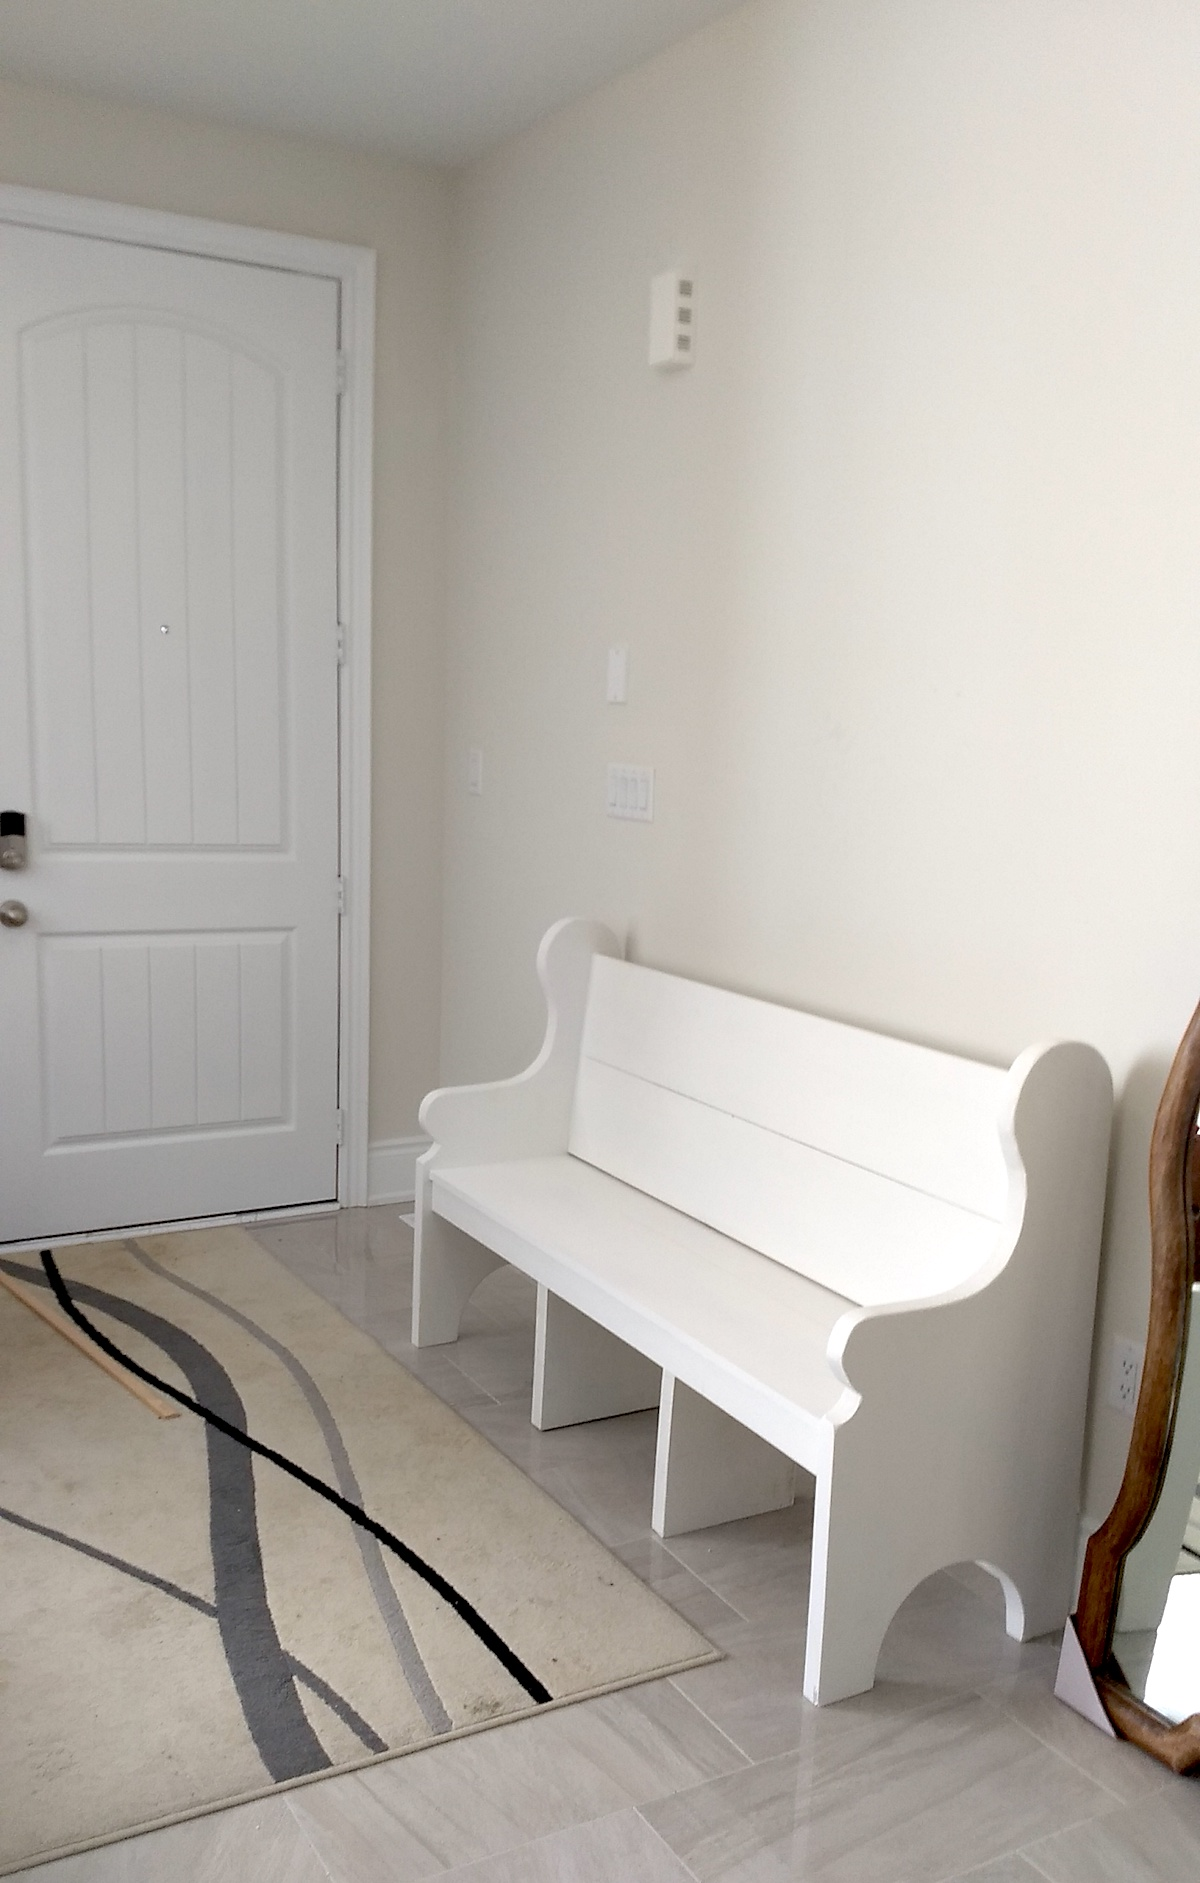 5-Foot Whitewashed Bench